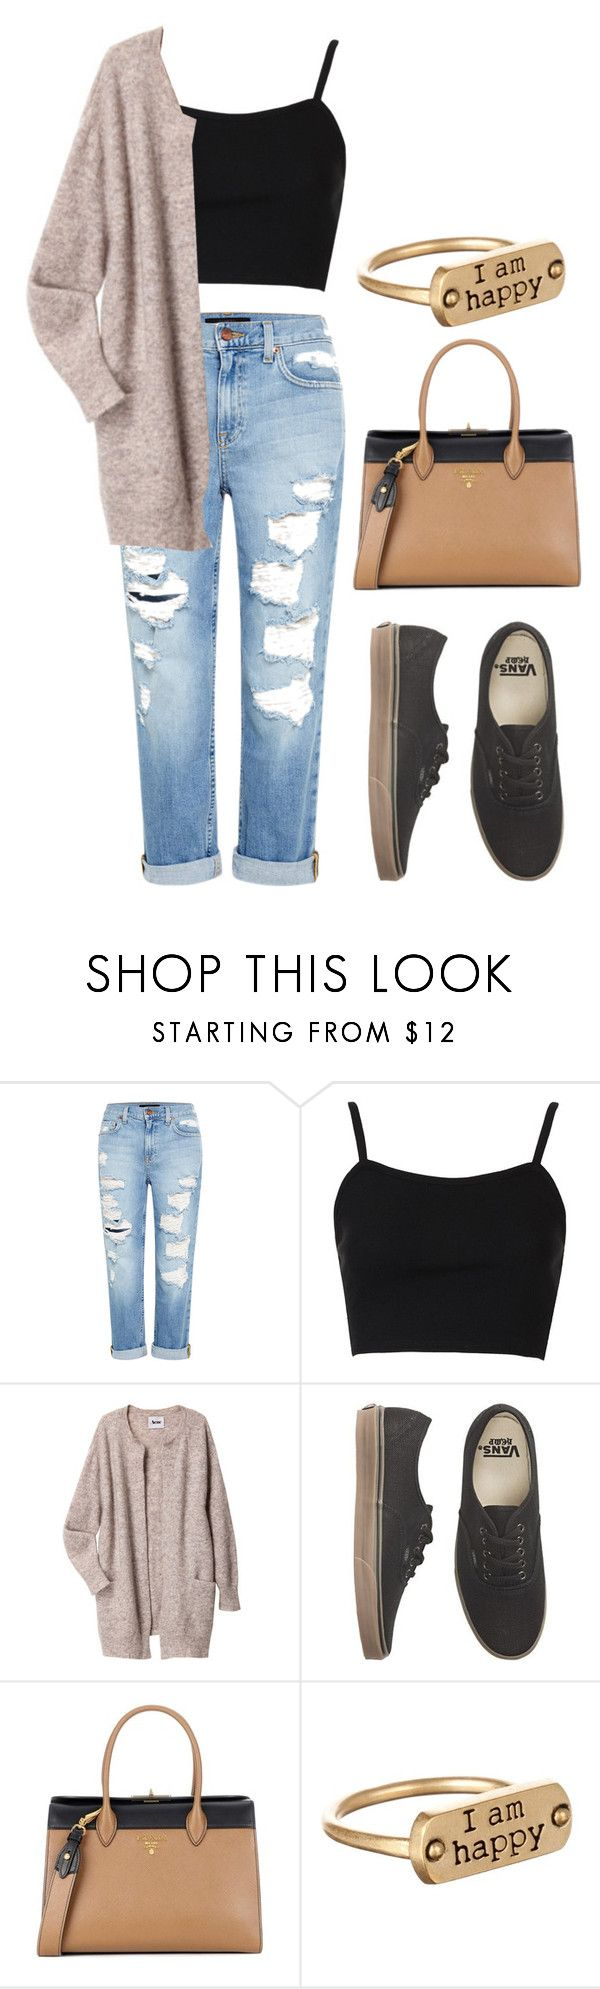 """""""Fall outfit"""" by hola-hi ❤ liked on Polyvore featuring Genetic Denim, Topshop, Acne Studios, Vans, Prada, Dogeared, Fall, vans, fallfashion and fall2017"""